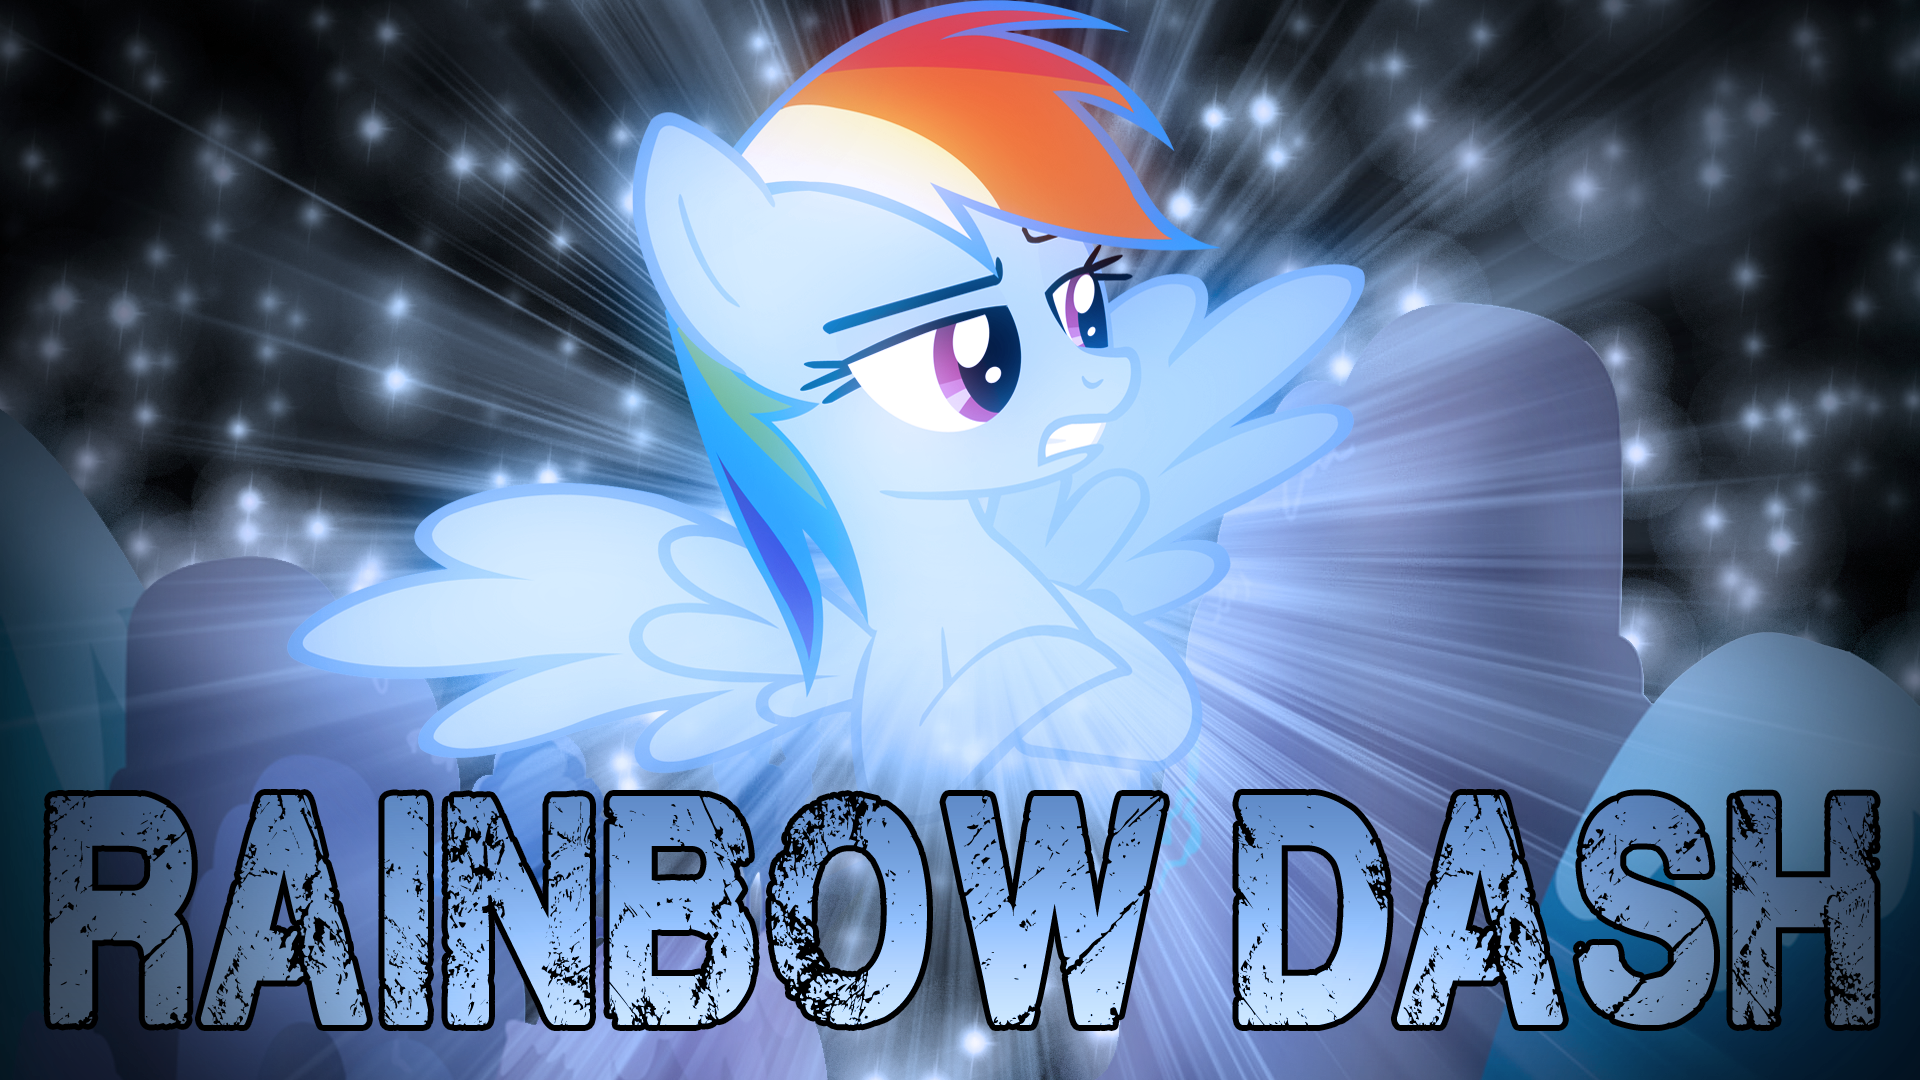 Rainbow Dash Wallpaper by TygerxL and Vexorb